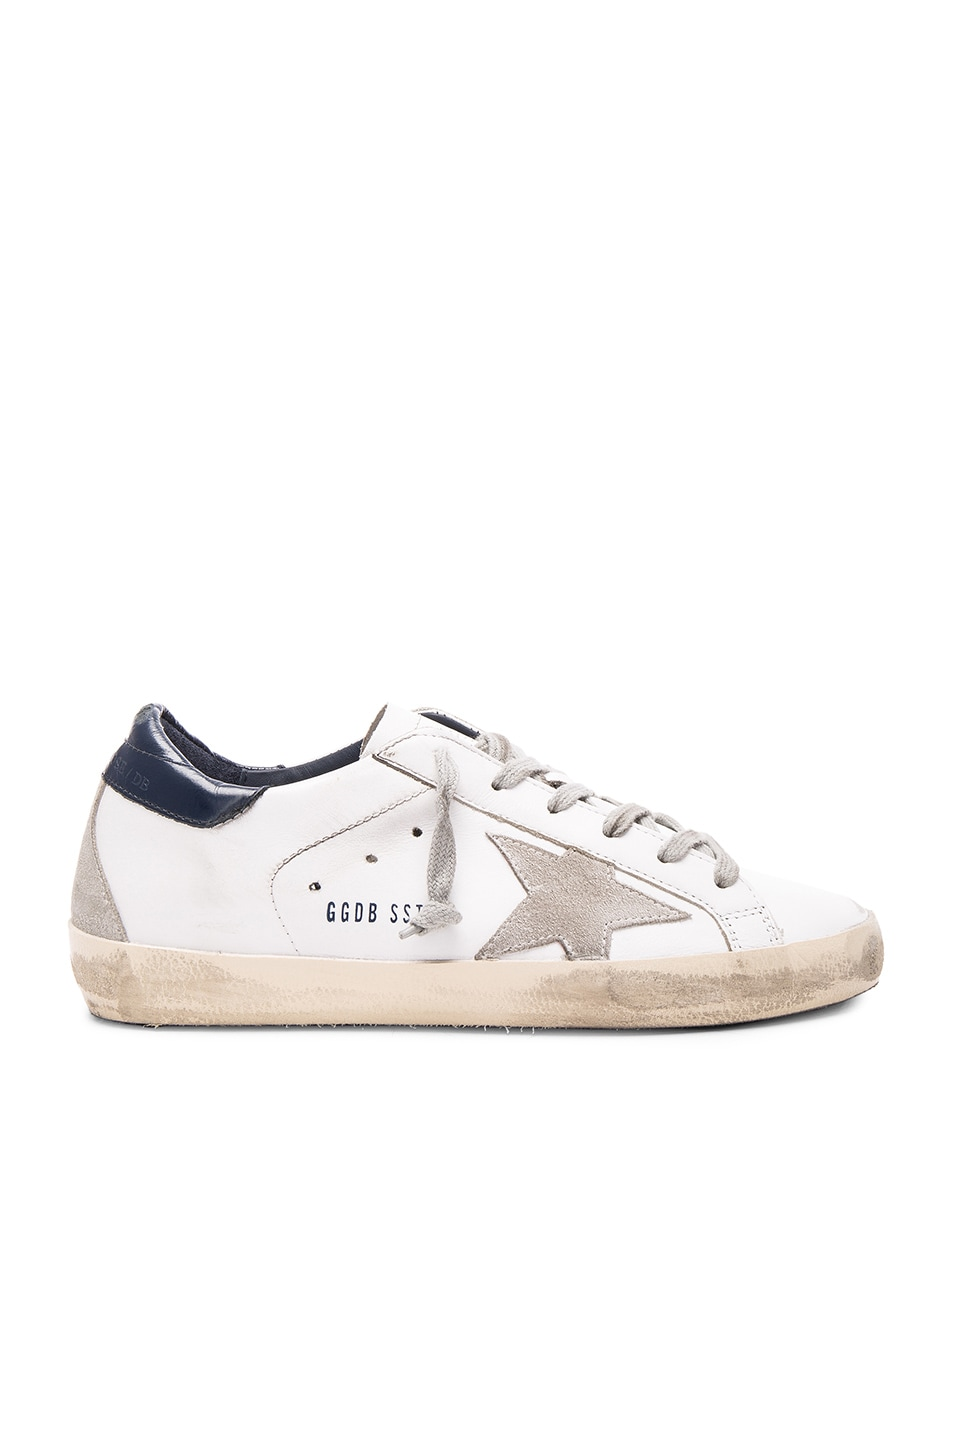 Image 1 of Golden Goose Leather Superstar Low Sneakers in White & Blue